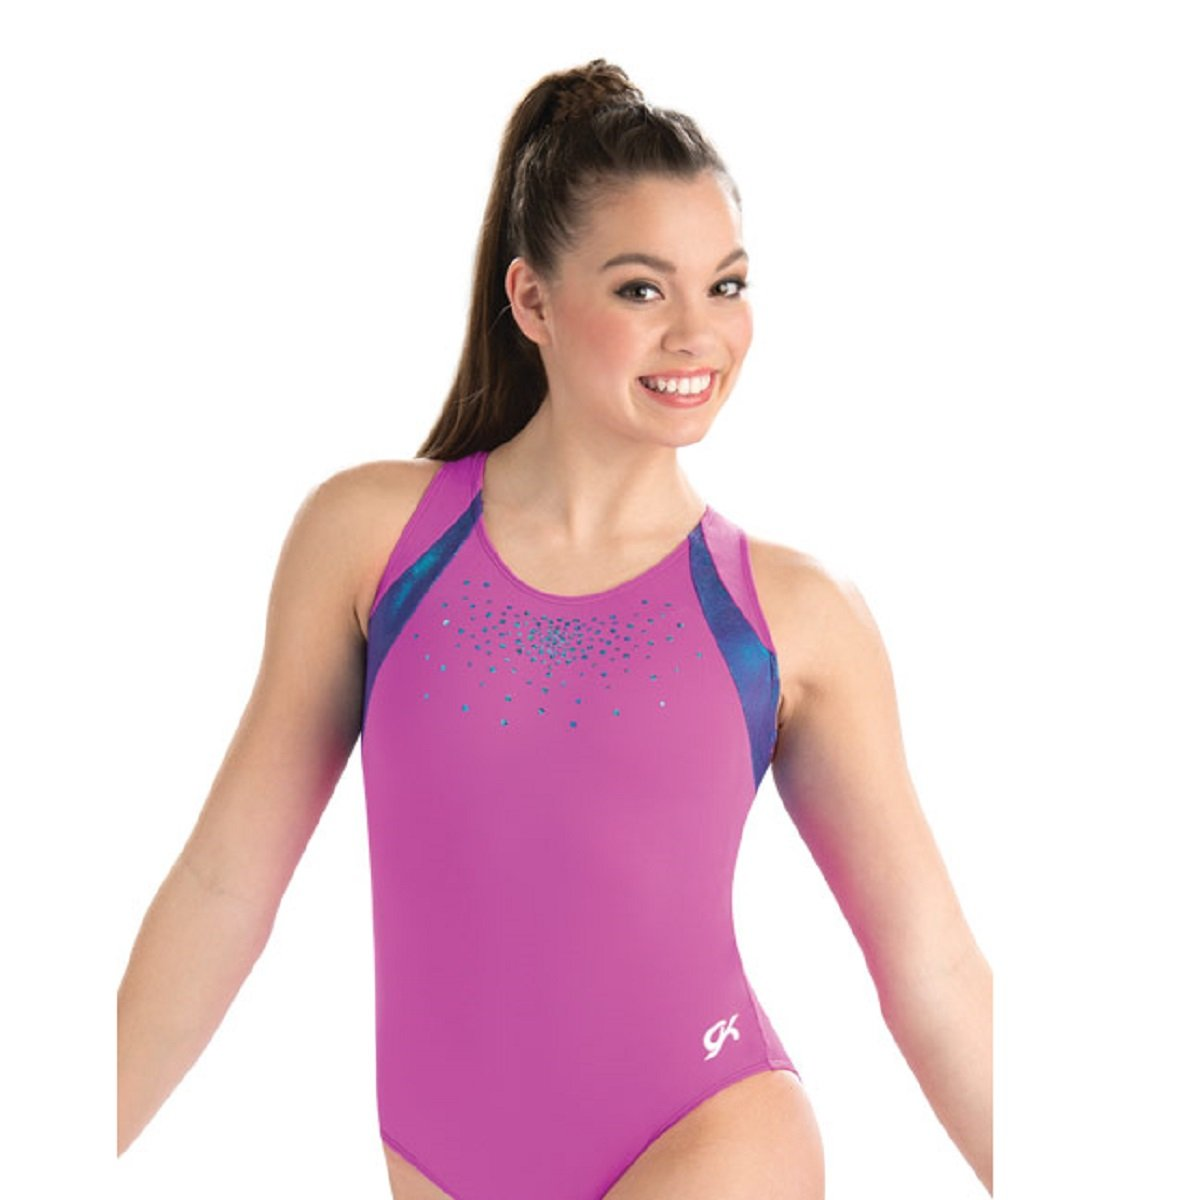 GK Elite Gypsy Laser Cut Leotard Child Medium CM by GK Elite